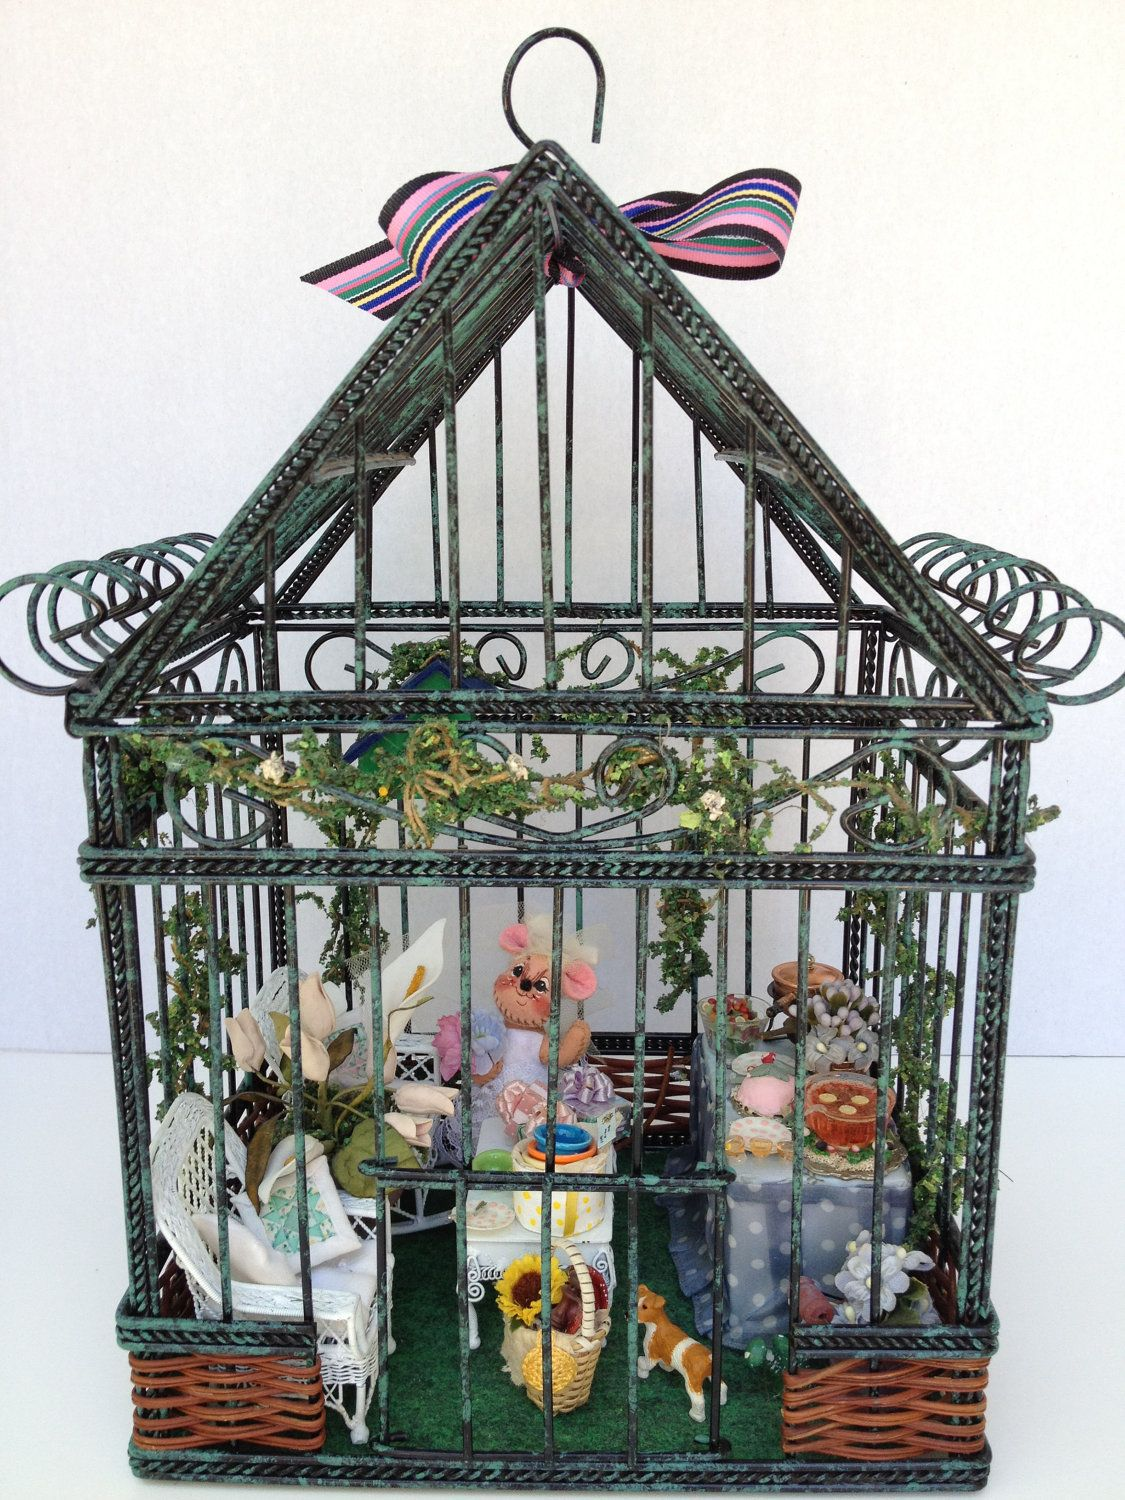 Miniature Children S Bedroom Room Box Diorama: MINIATURE BRIDAL SHOWER A Garden Party And Buffet Lunch